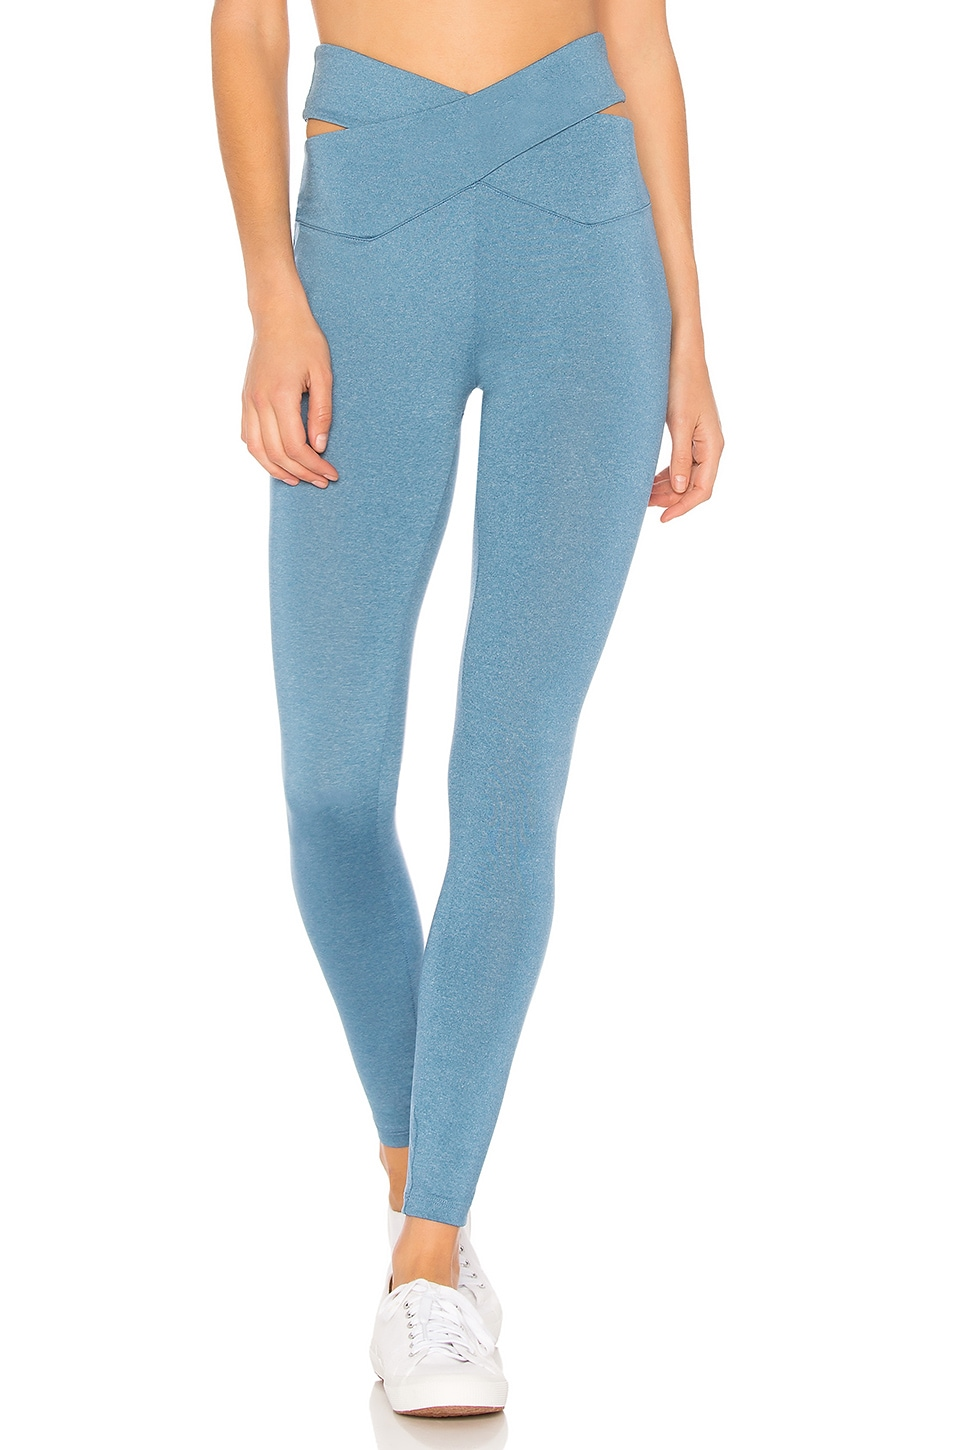 YEAR OF OURS CROSSED CUT OUT WAIST LEGGING